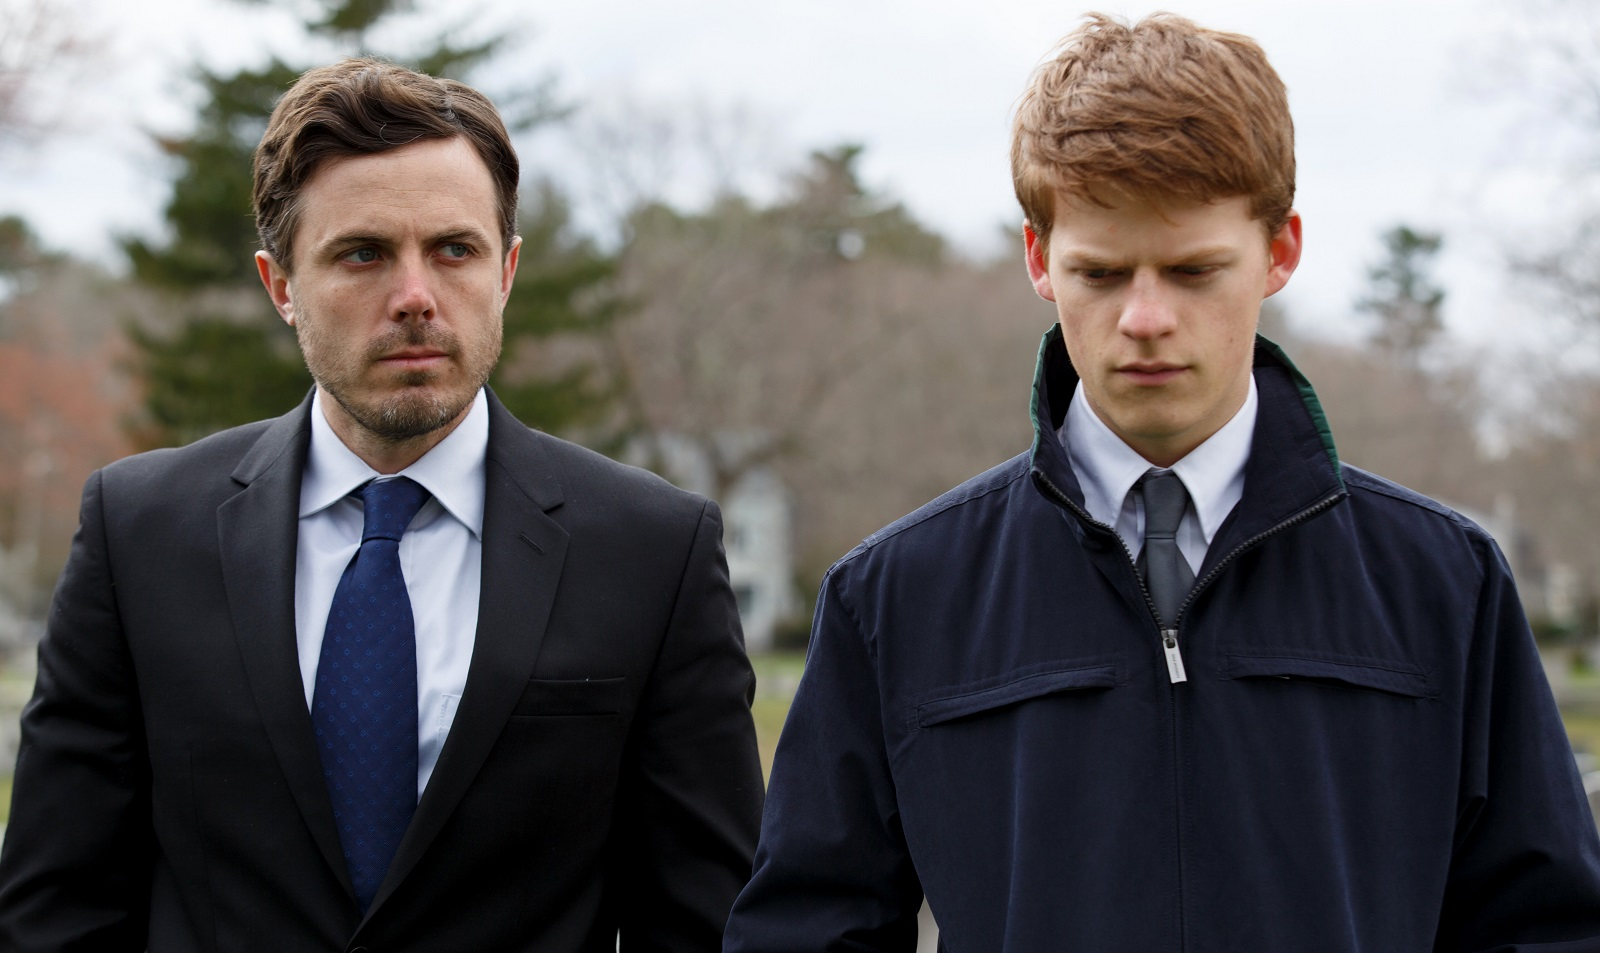 Casey Affleck, left, and Lucas Hedges star in the emotional drama 'Manchester by the Sea.'